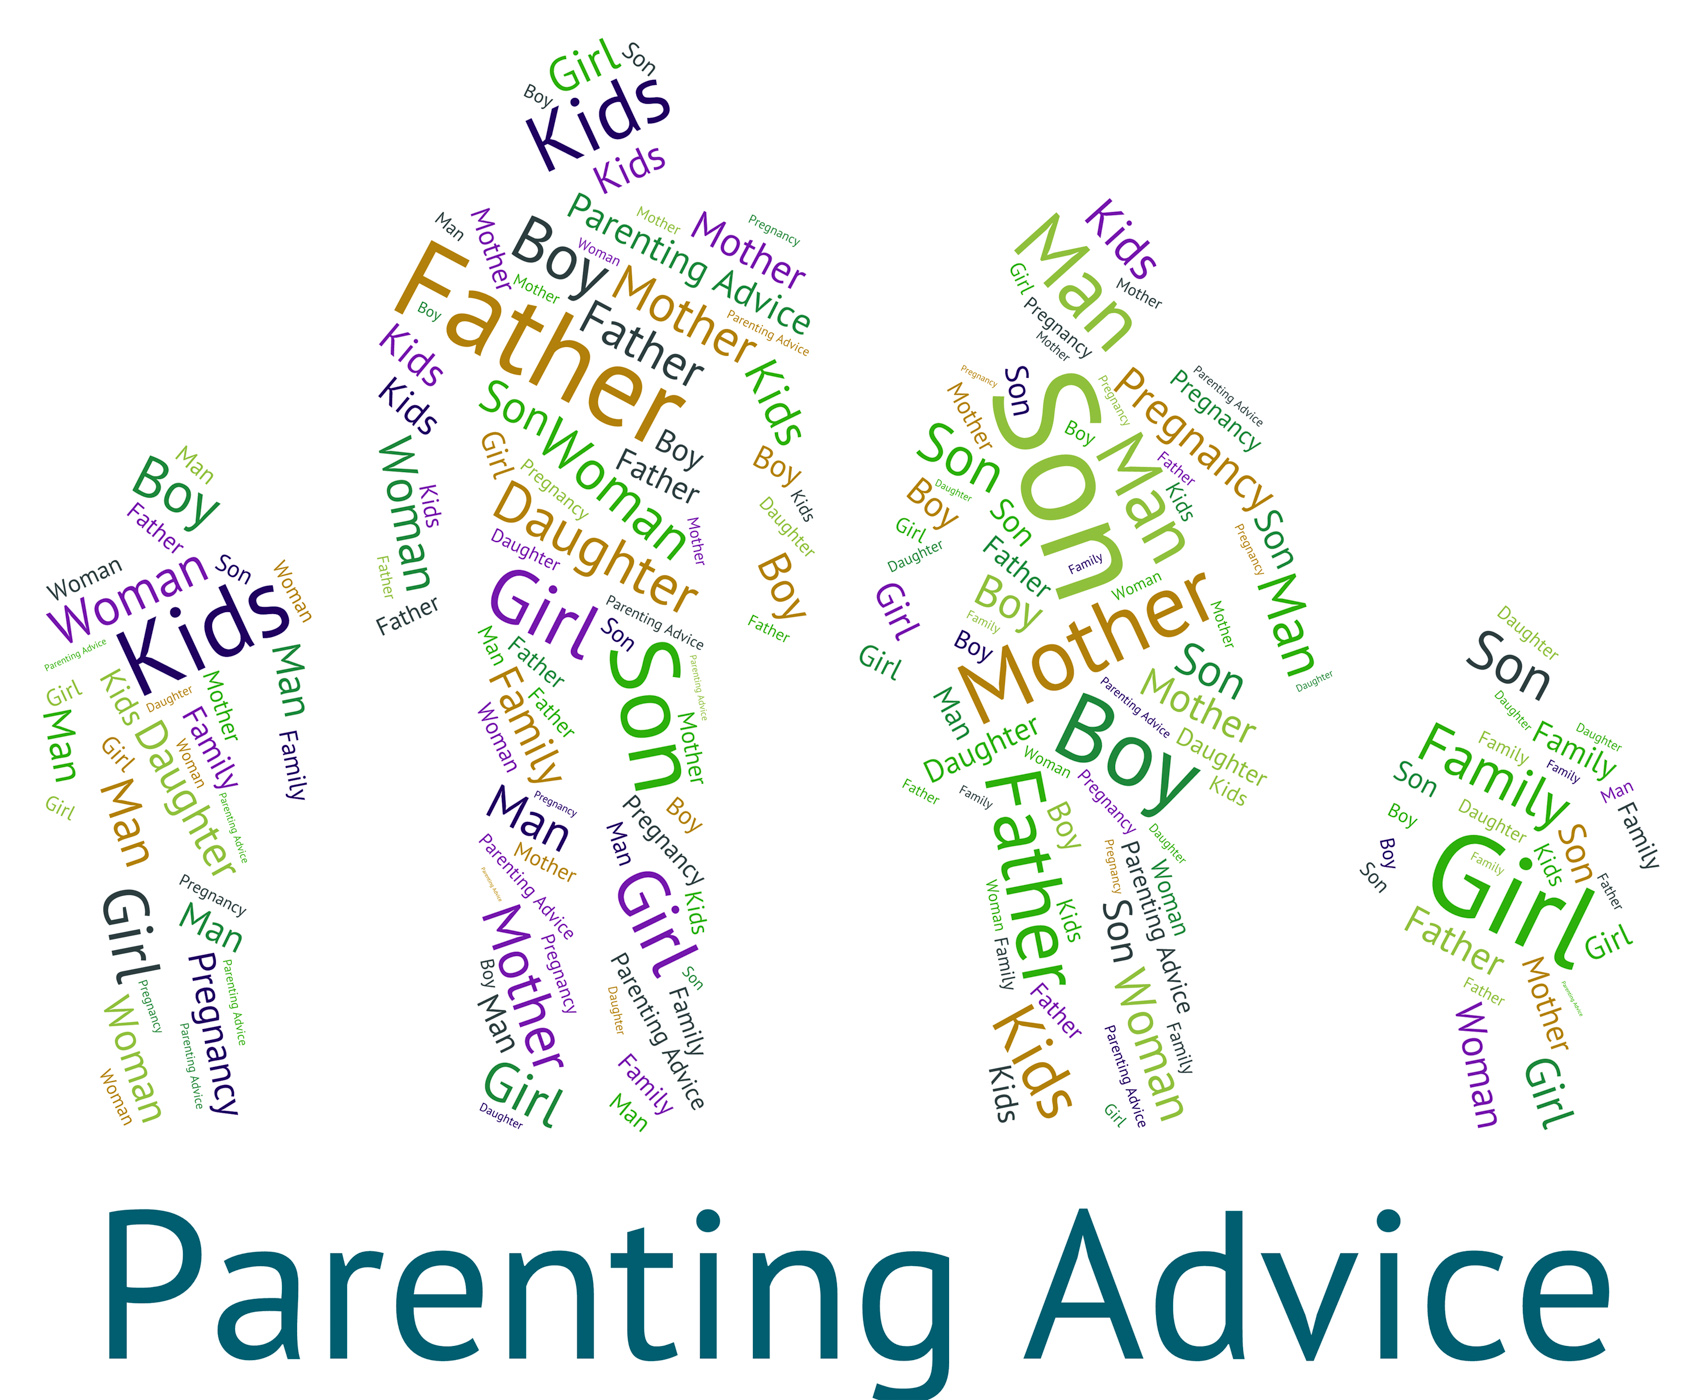 Parenting Advice Means Mother And Child And Tips, Advice, Motherandbaby, Wordcloud, Word, HQ Photo